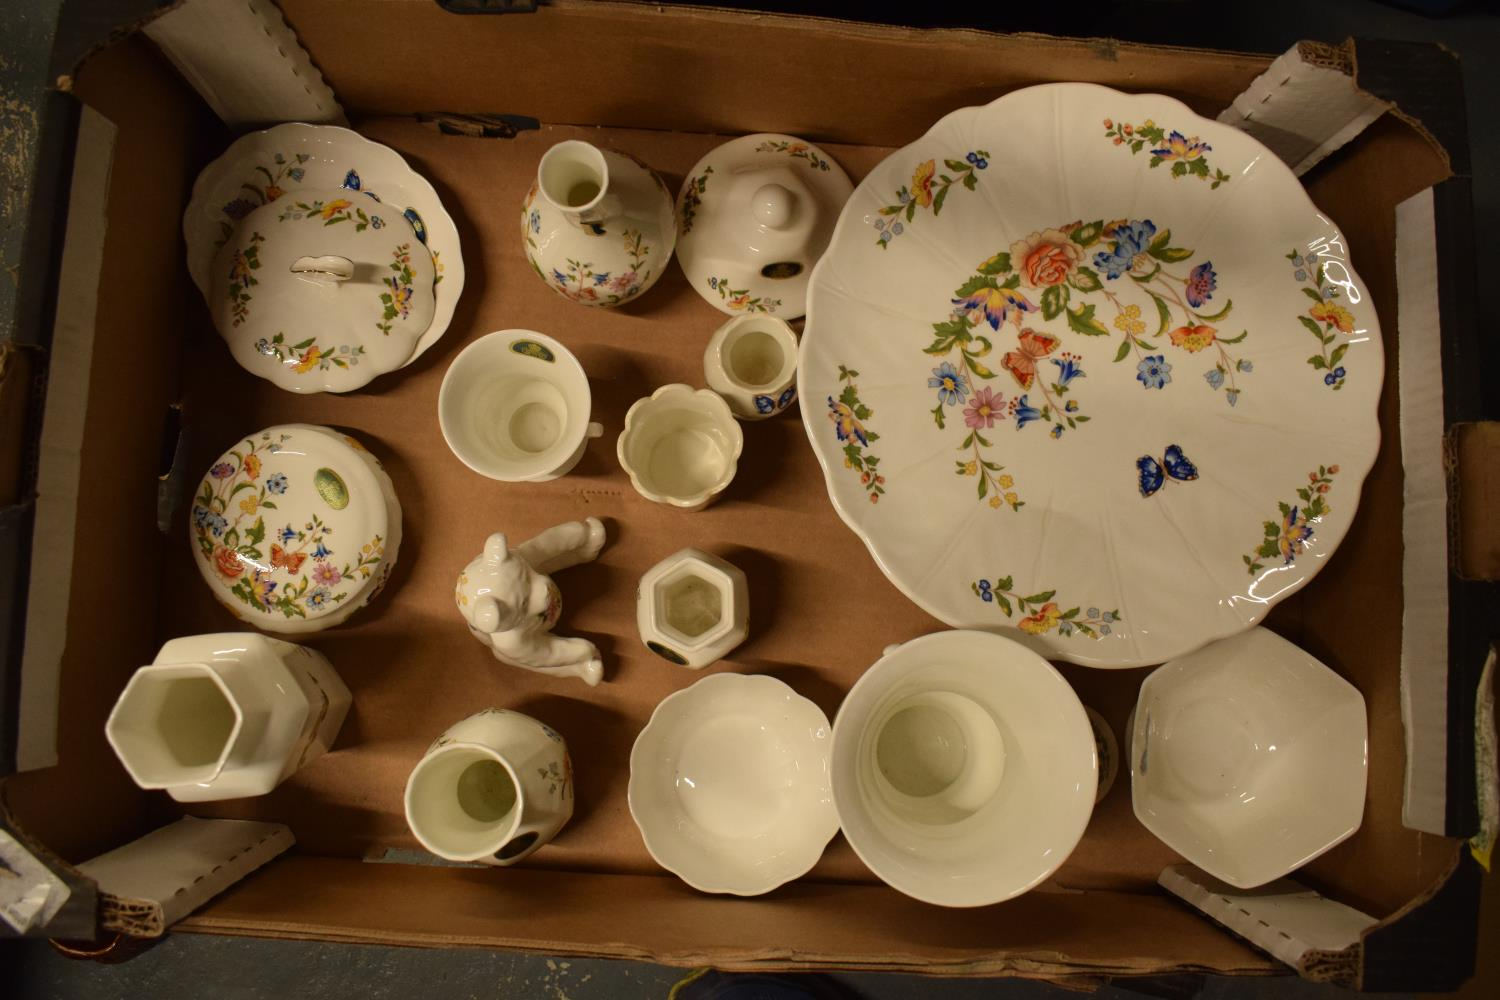 A collection of Aynsley Cottage Garden items to include a cake stand, trinkets, vases etc. Generally